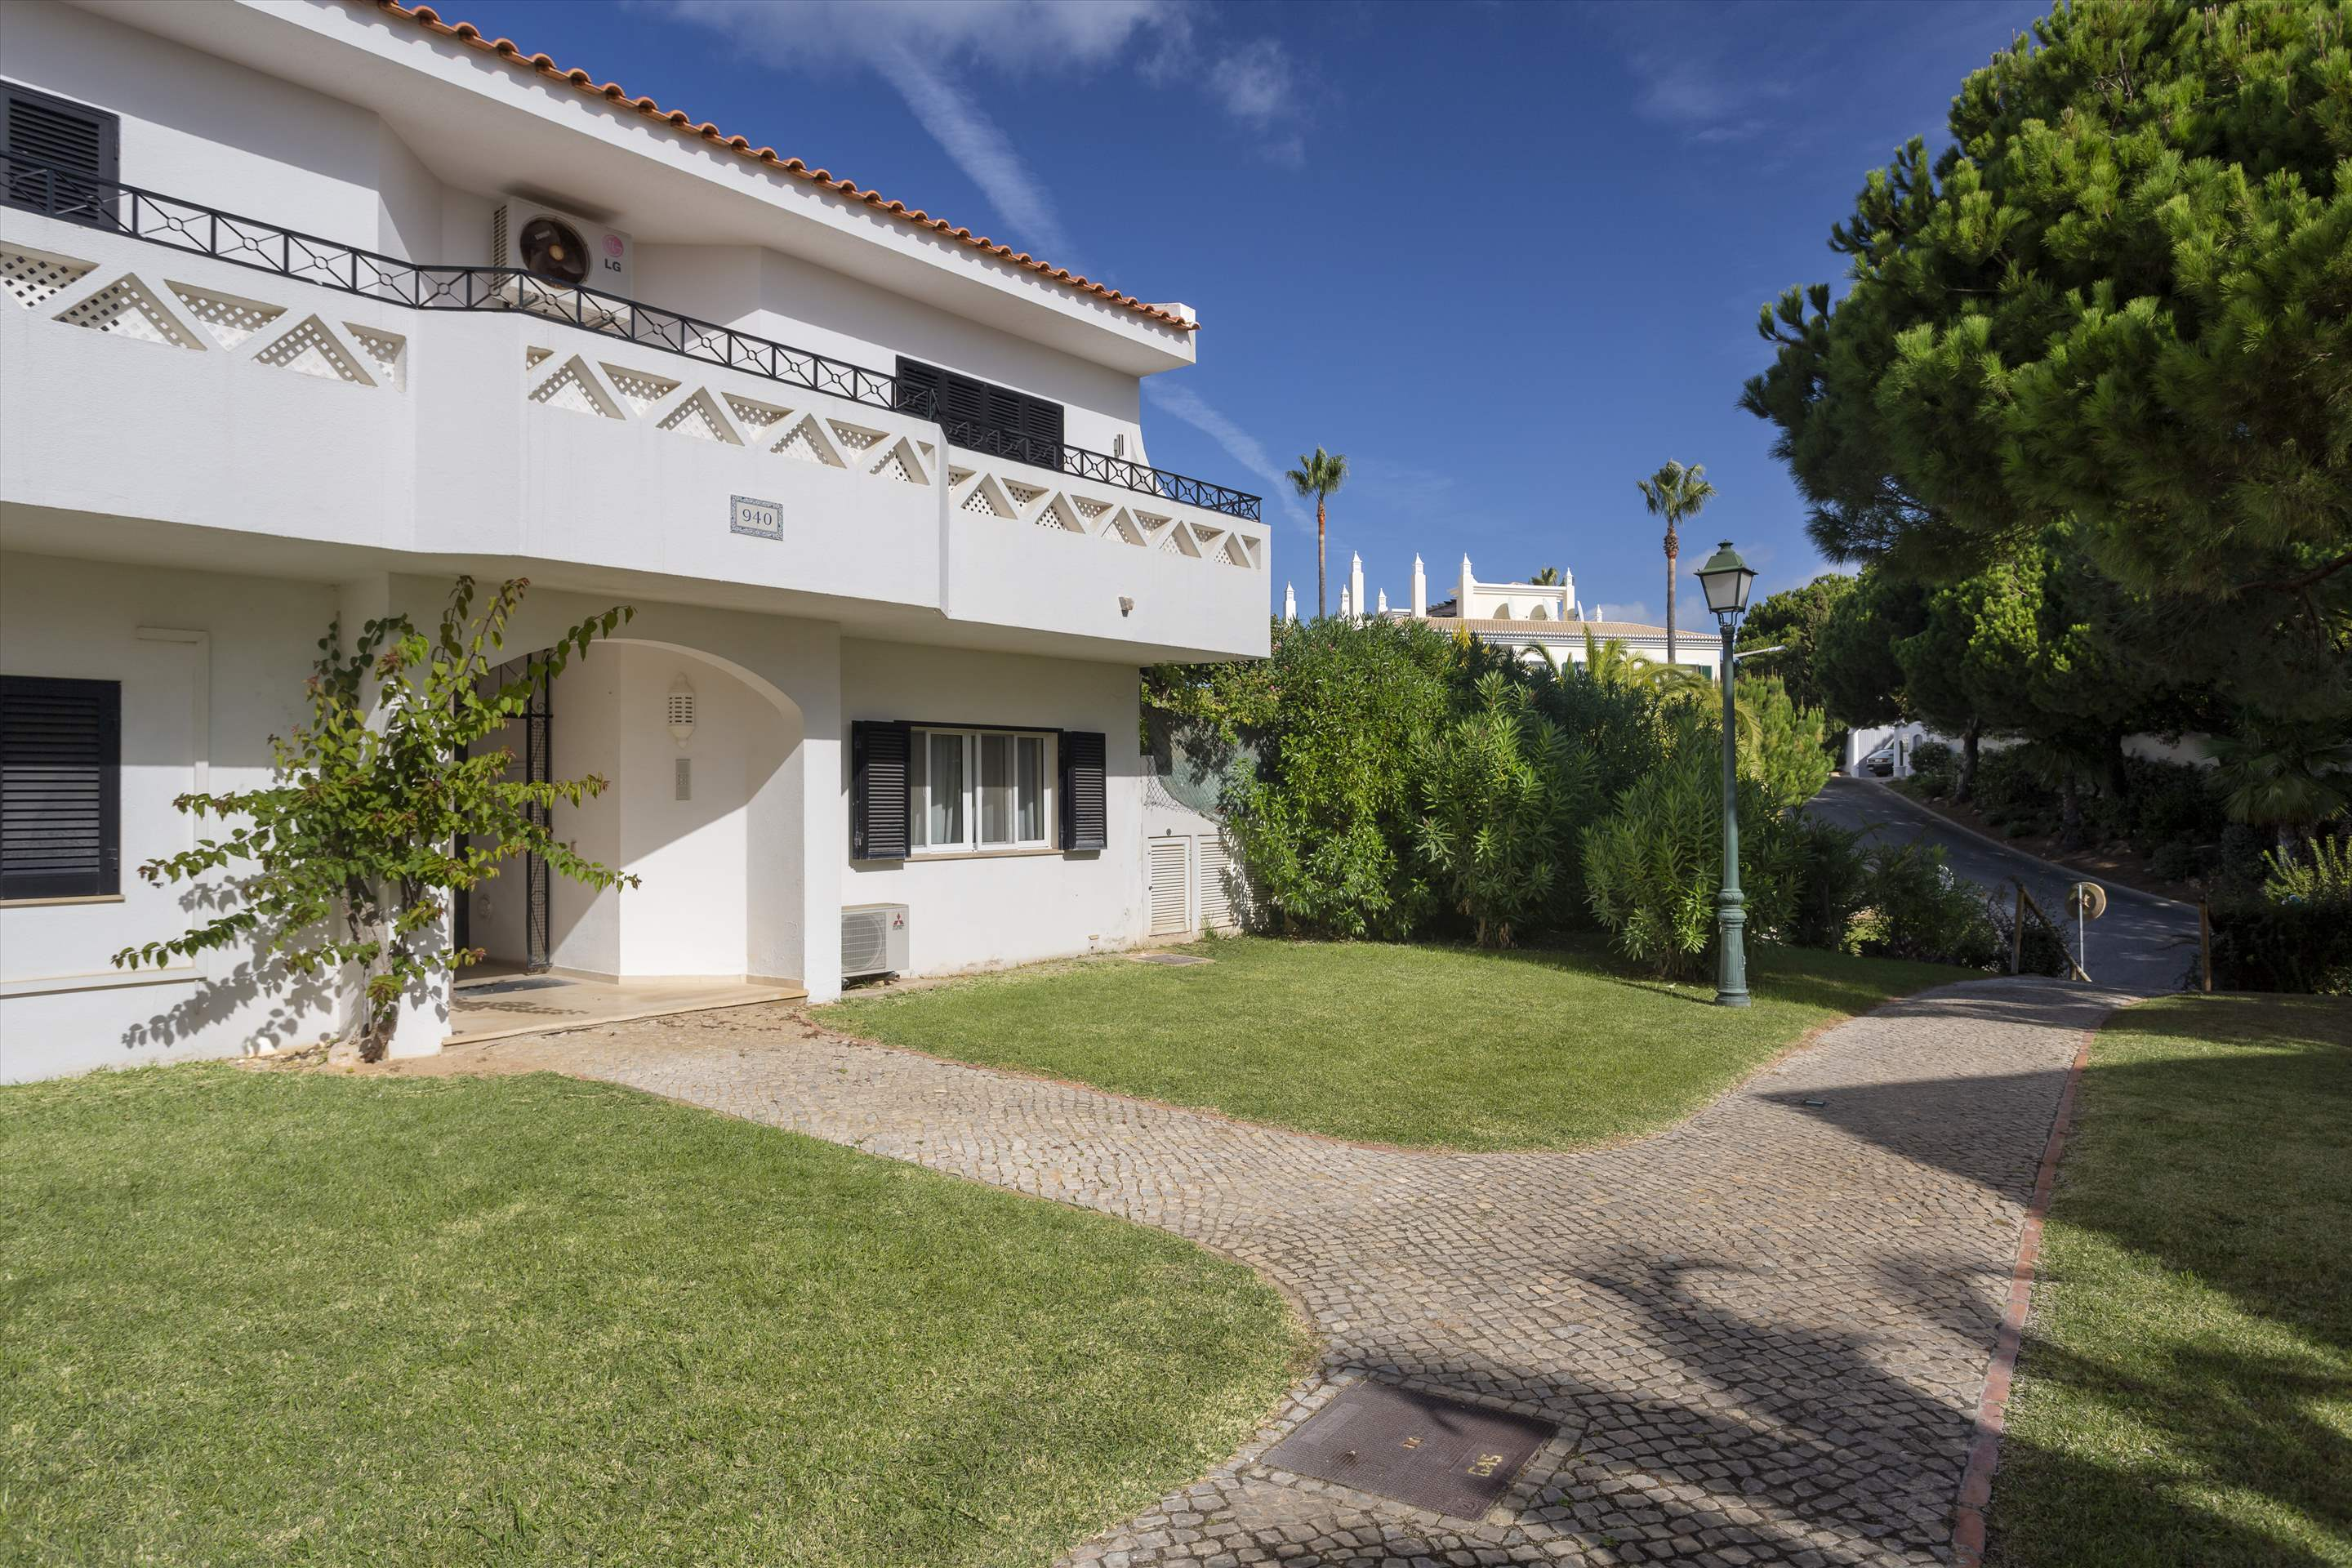 Apartment Academia, 3 bedroom apartment in Vale do Lobo, Algarve